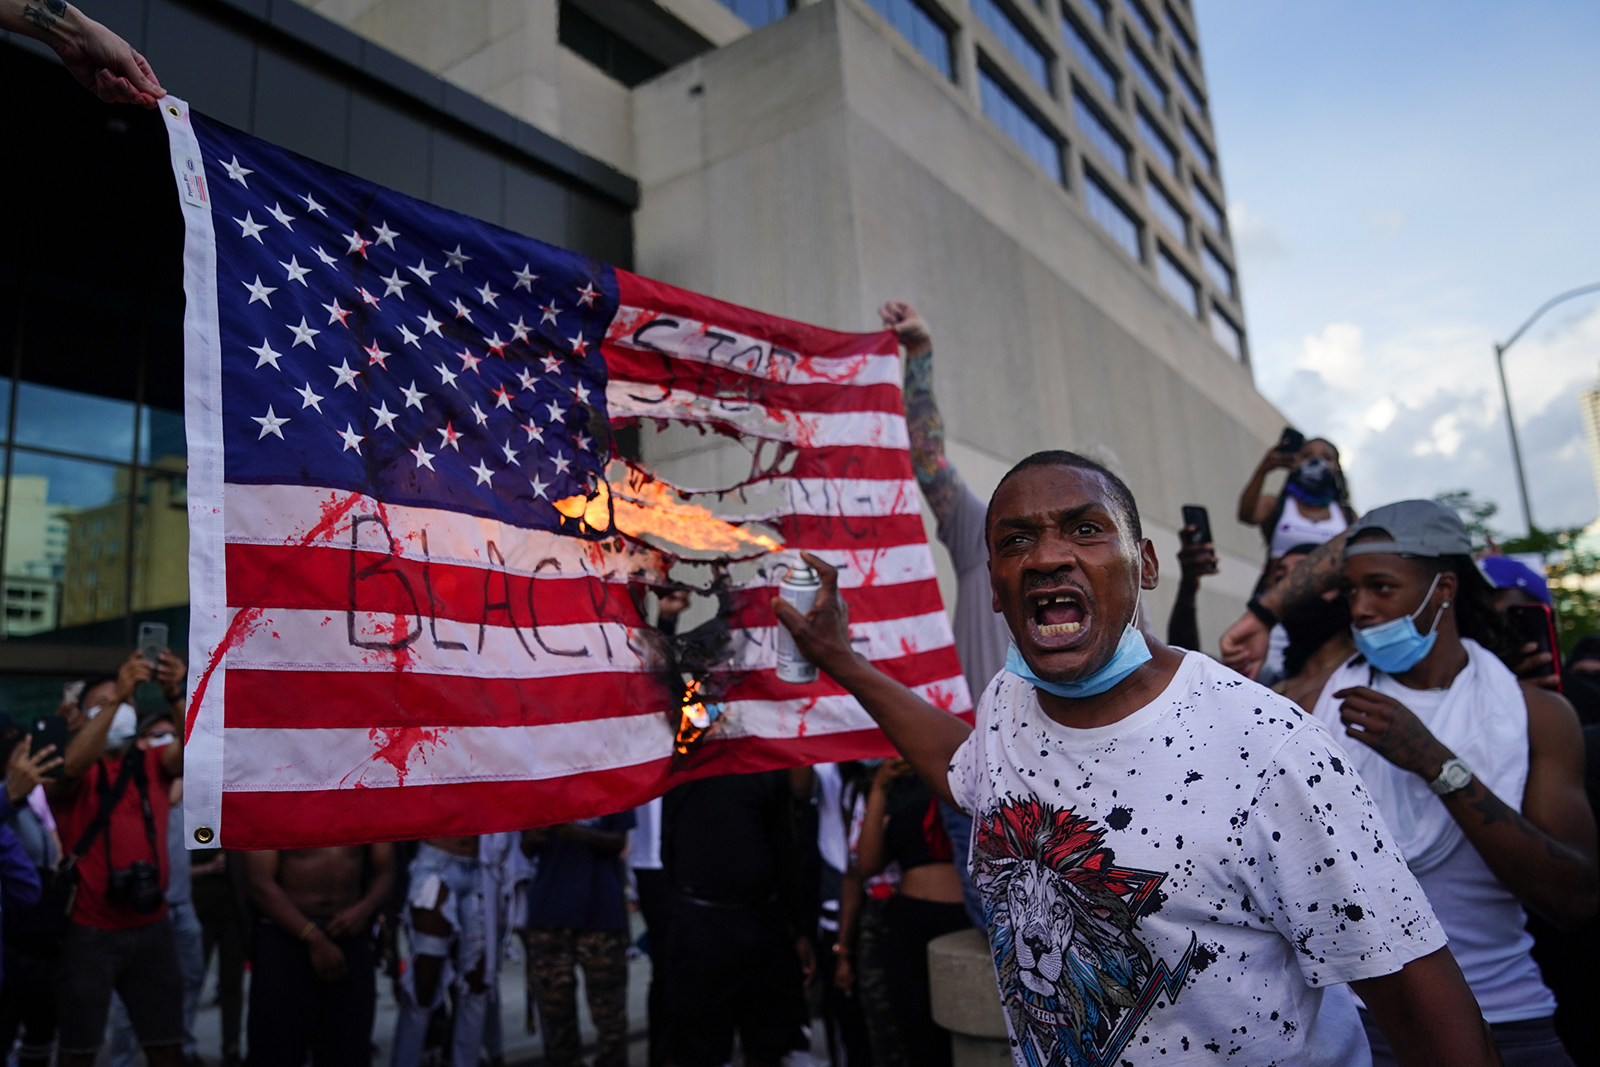 Protesters burn a flag outside the CNN Center on May 29, in Atlanta, Georgia.